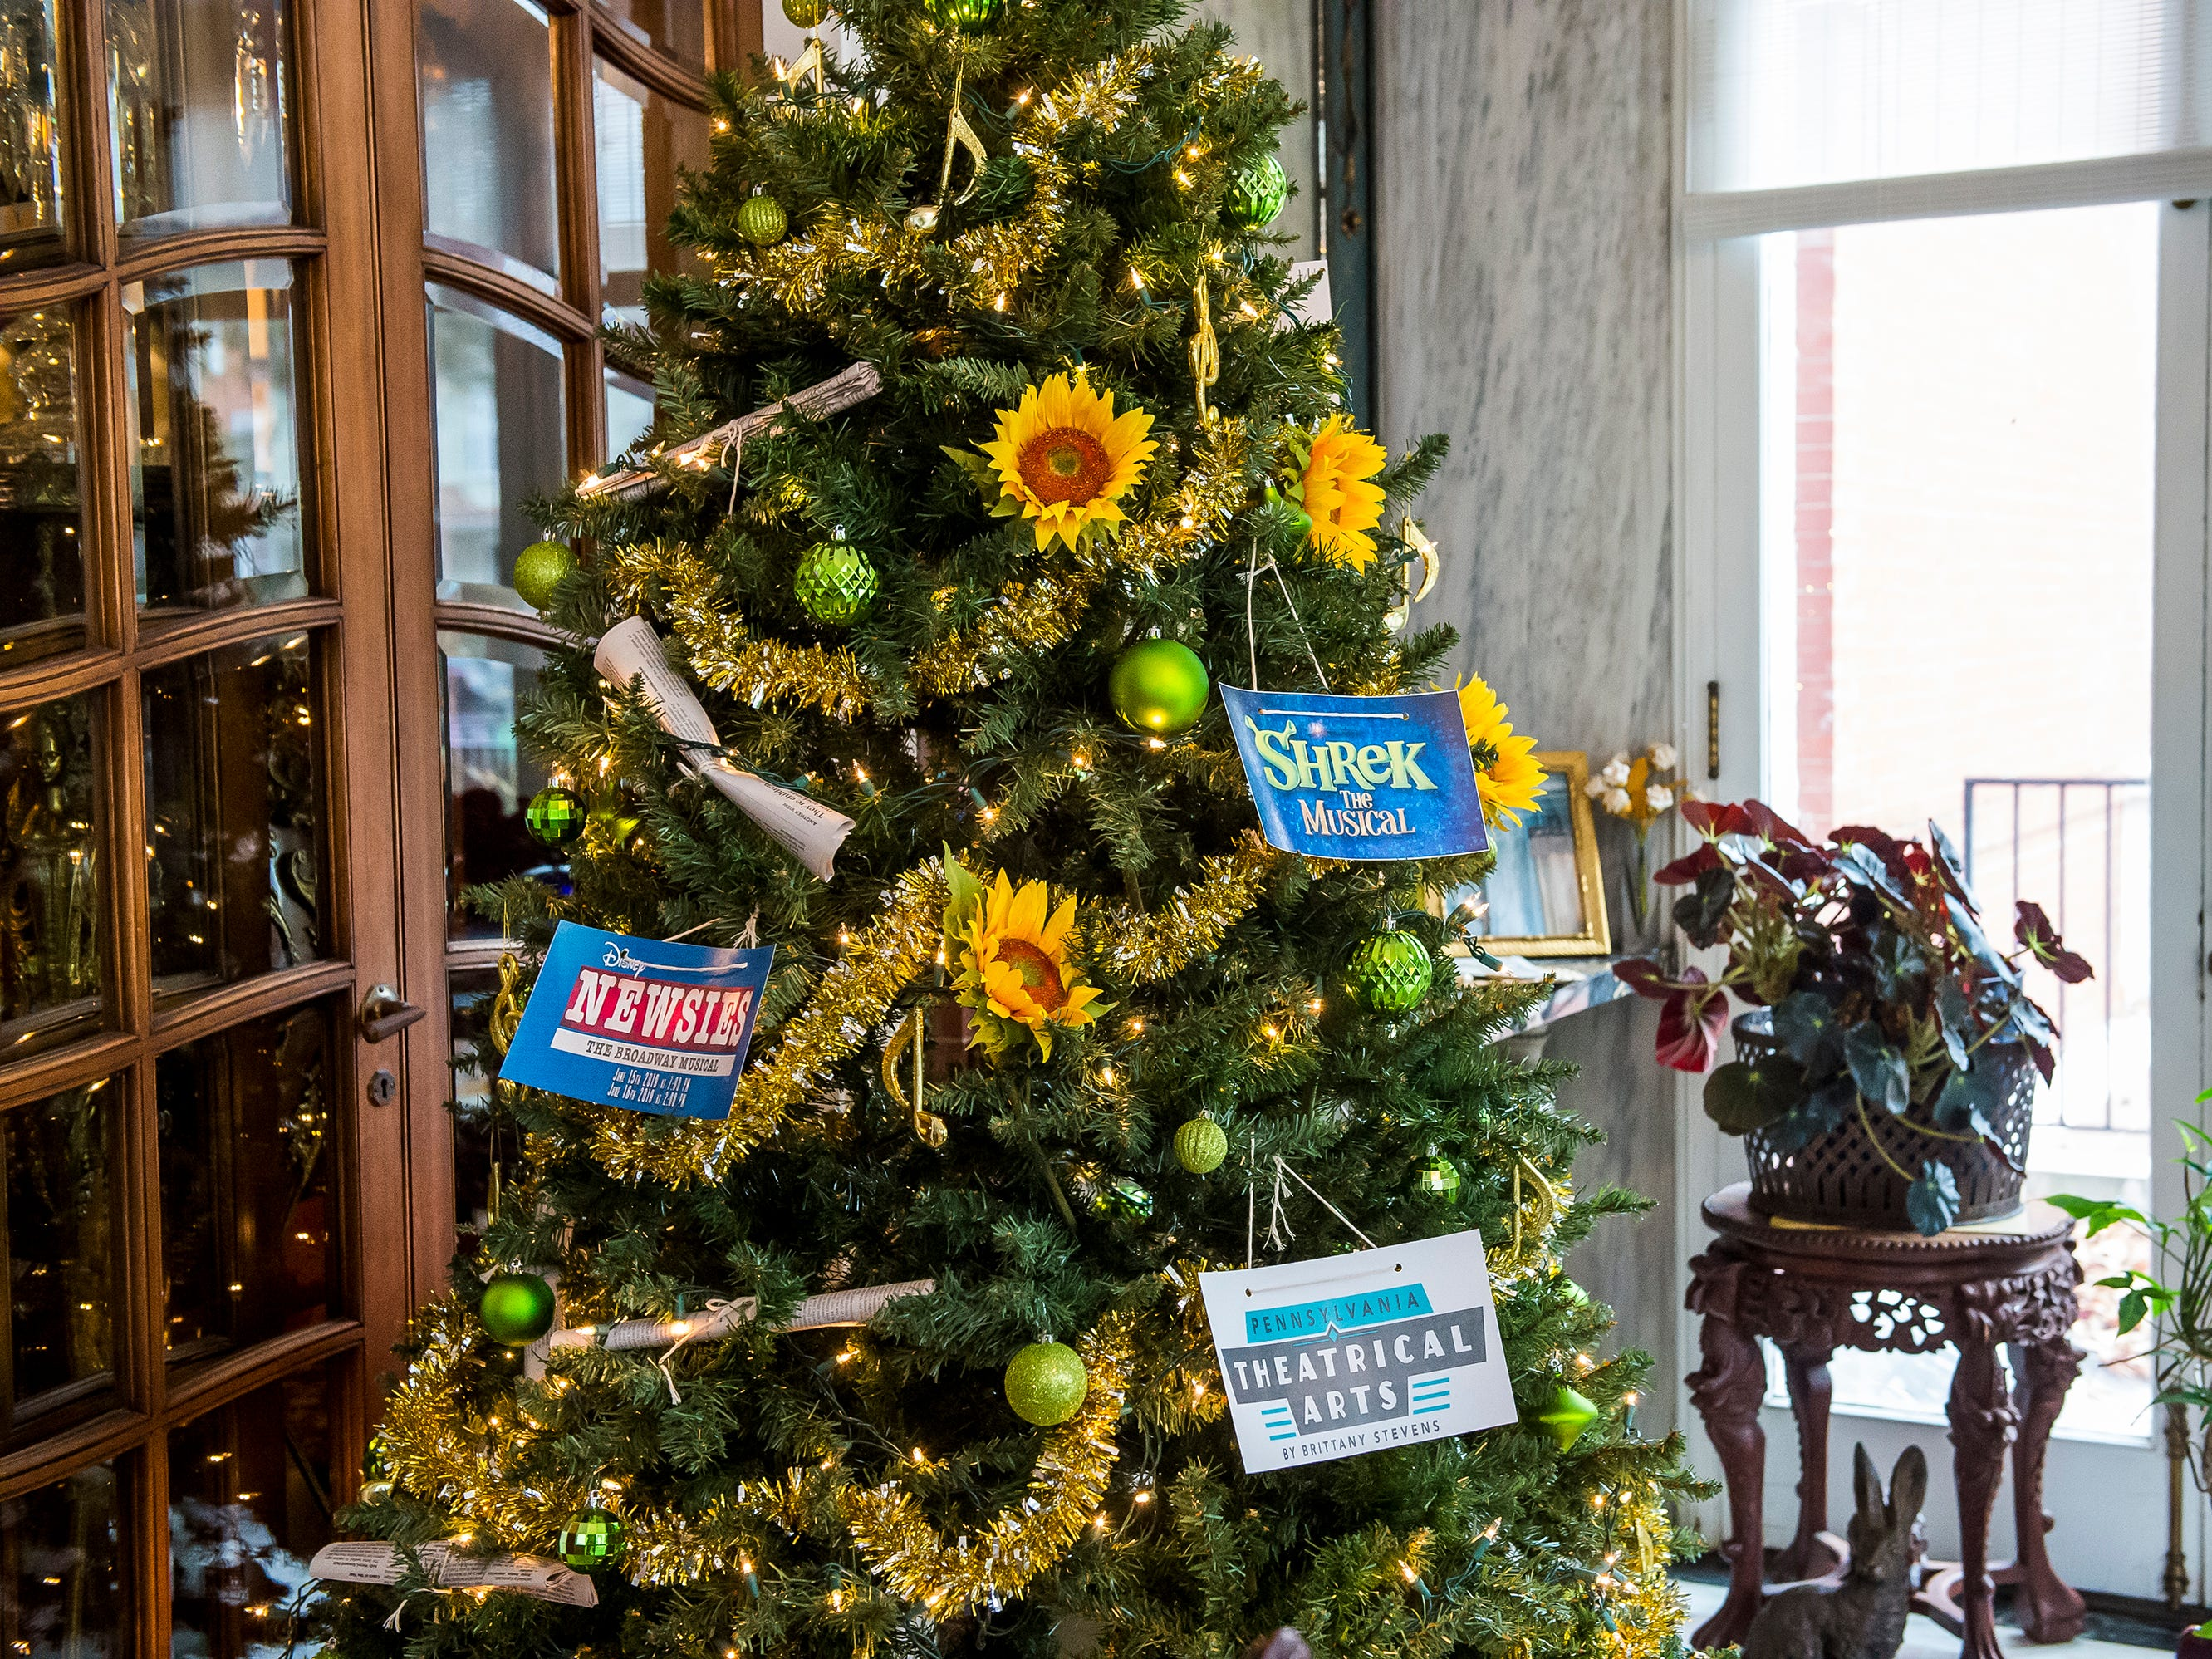 Pennsylvania Theatrical Arts by Brittany Stevens (PATABS) is one of several local businesses that decorated a Christmas tree for display at the Warehime-Myers Mansion in Hanover.